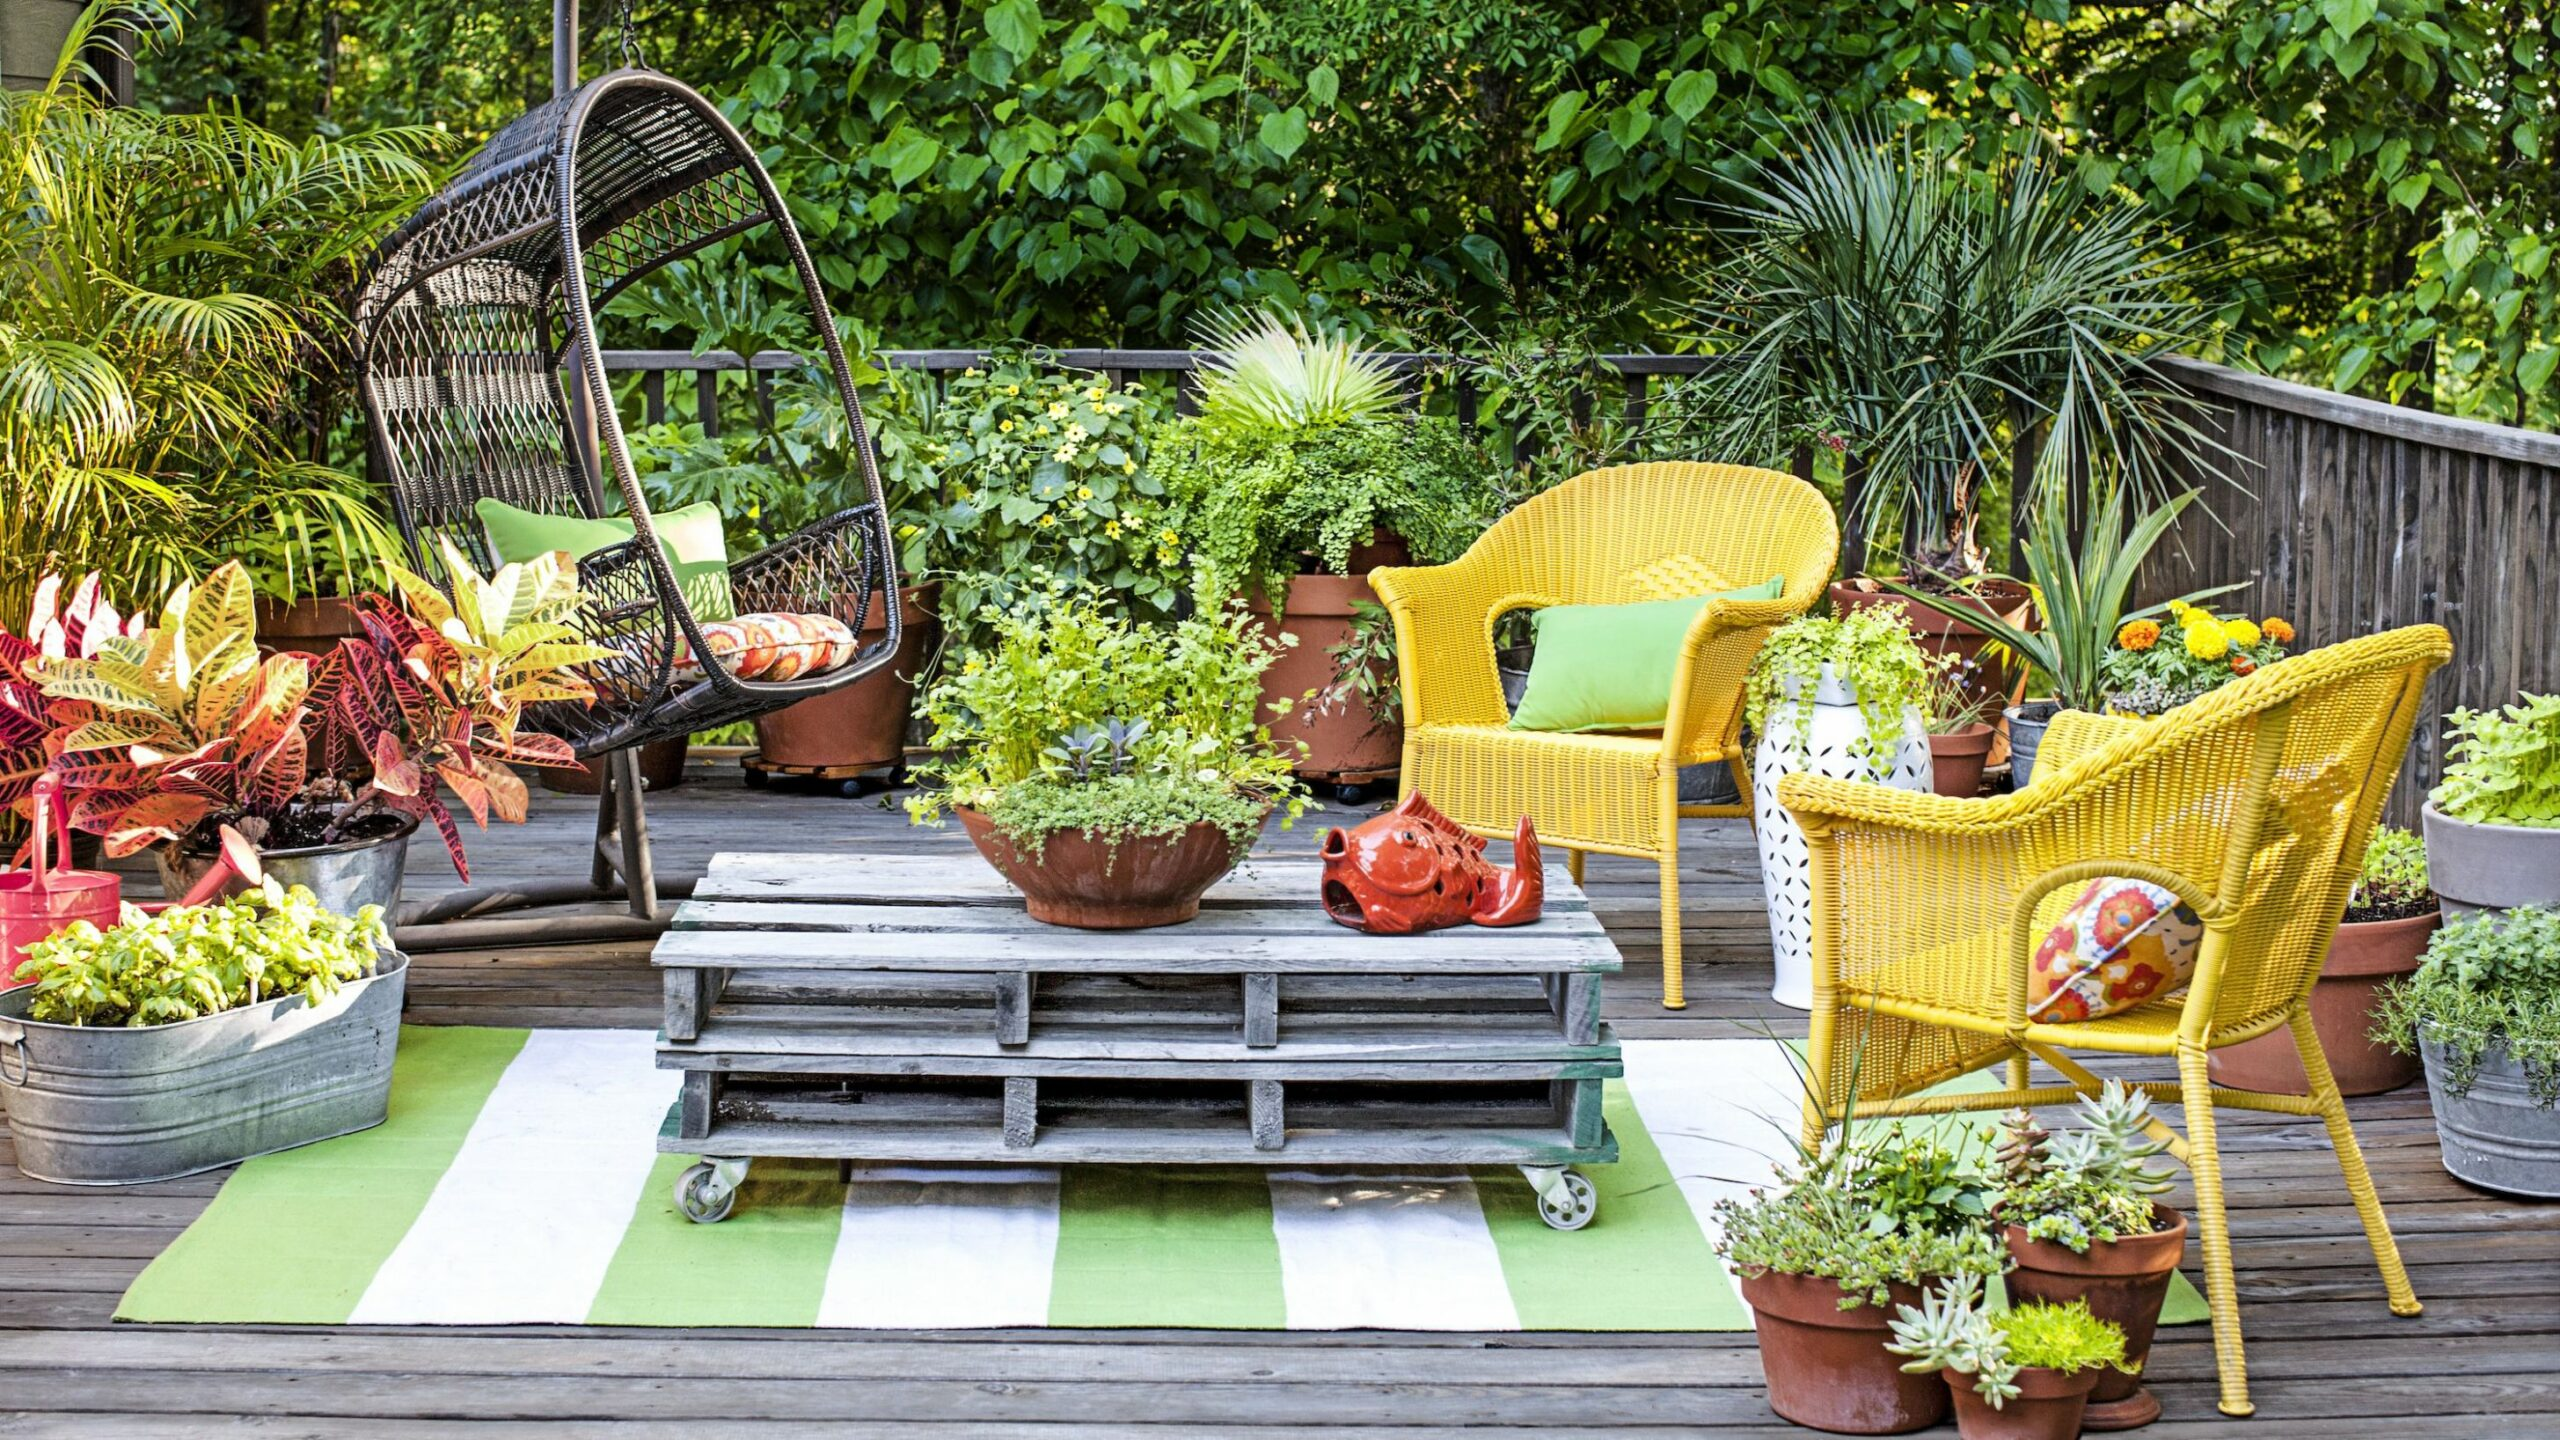 10 Container Gardening Ideas - Potted Plant Ideas We Love - garden ideas with pots